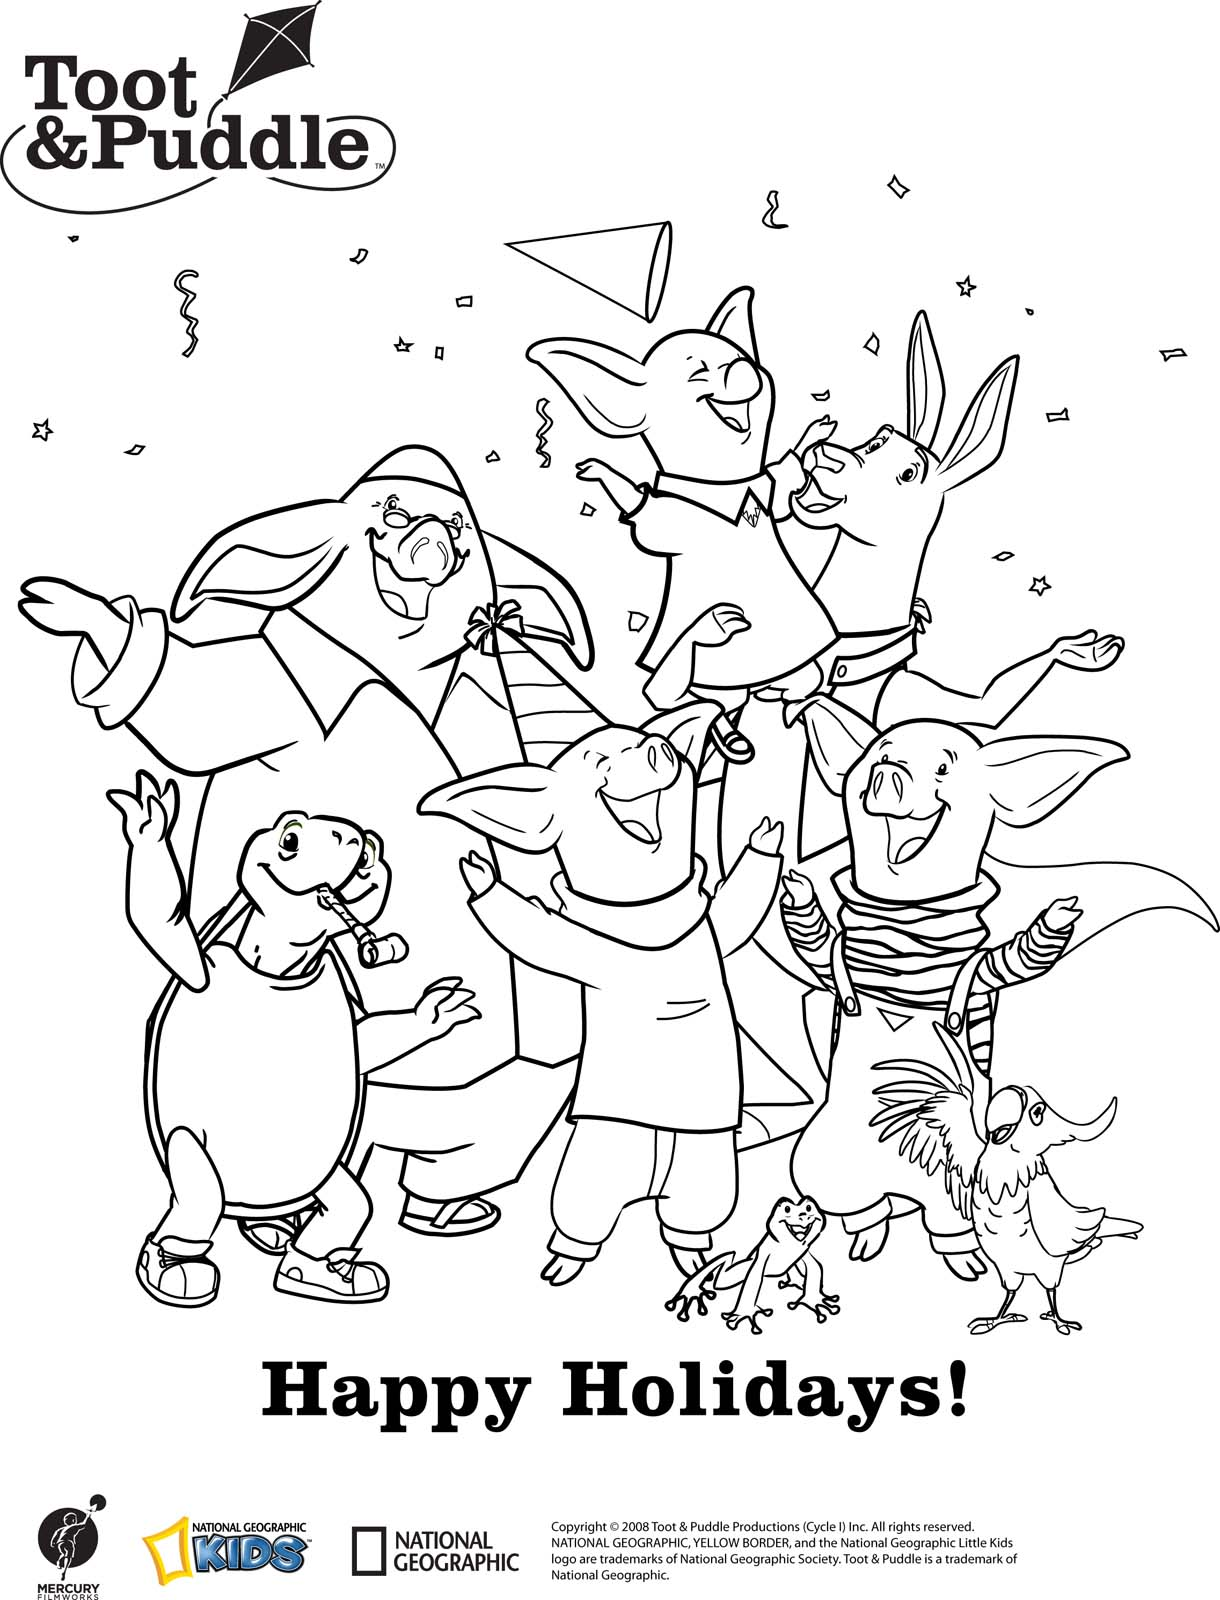 toot and puddles coloring pages - photo#23